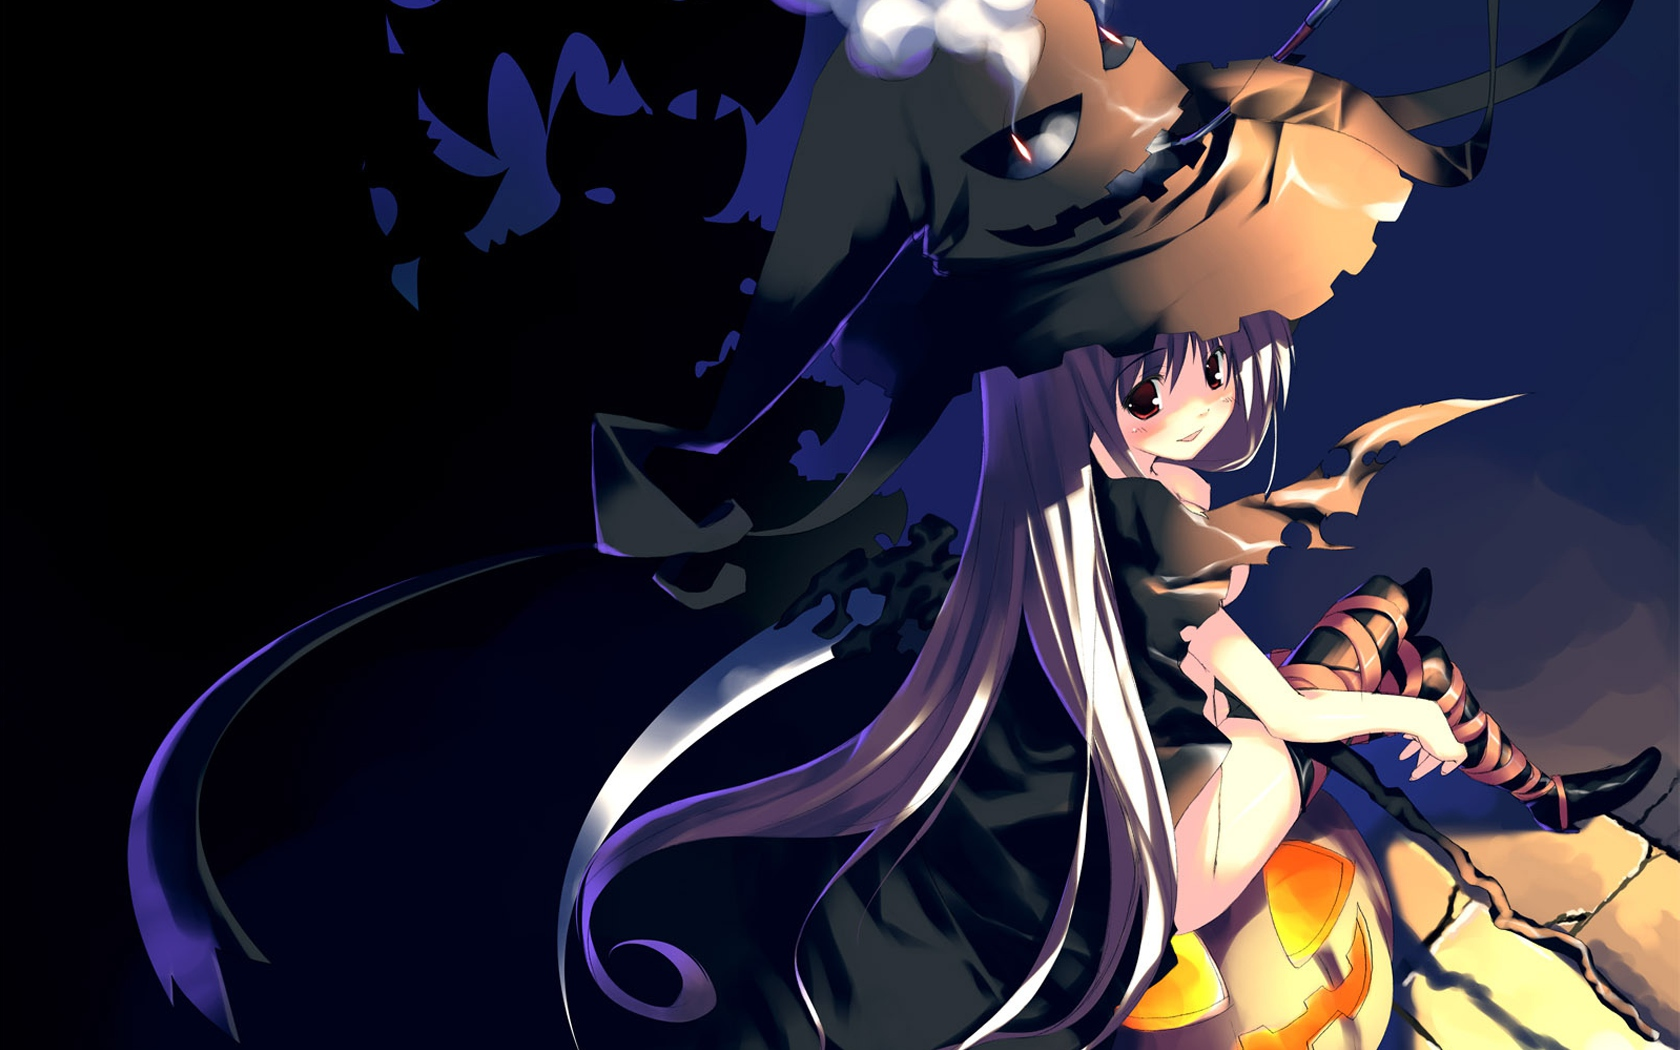 boots halloween hat long_hair nude pumpkin smoking tagme_(artist) thighhighs witch witch_hat